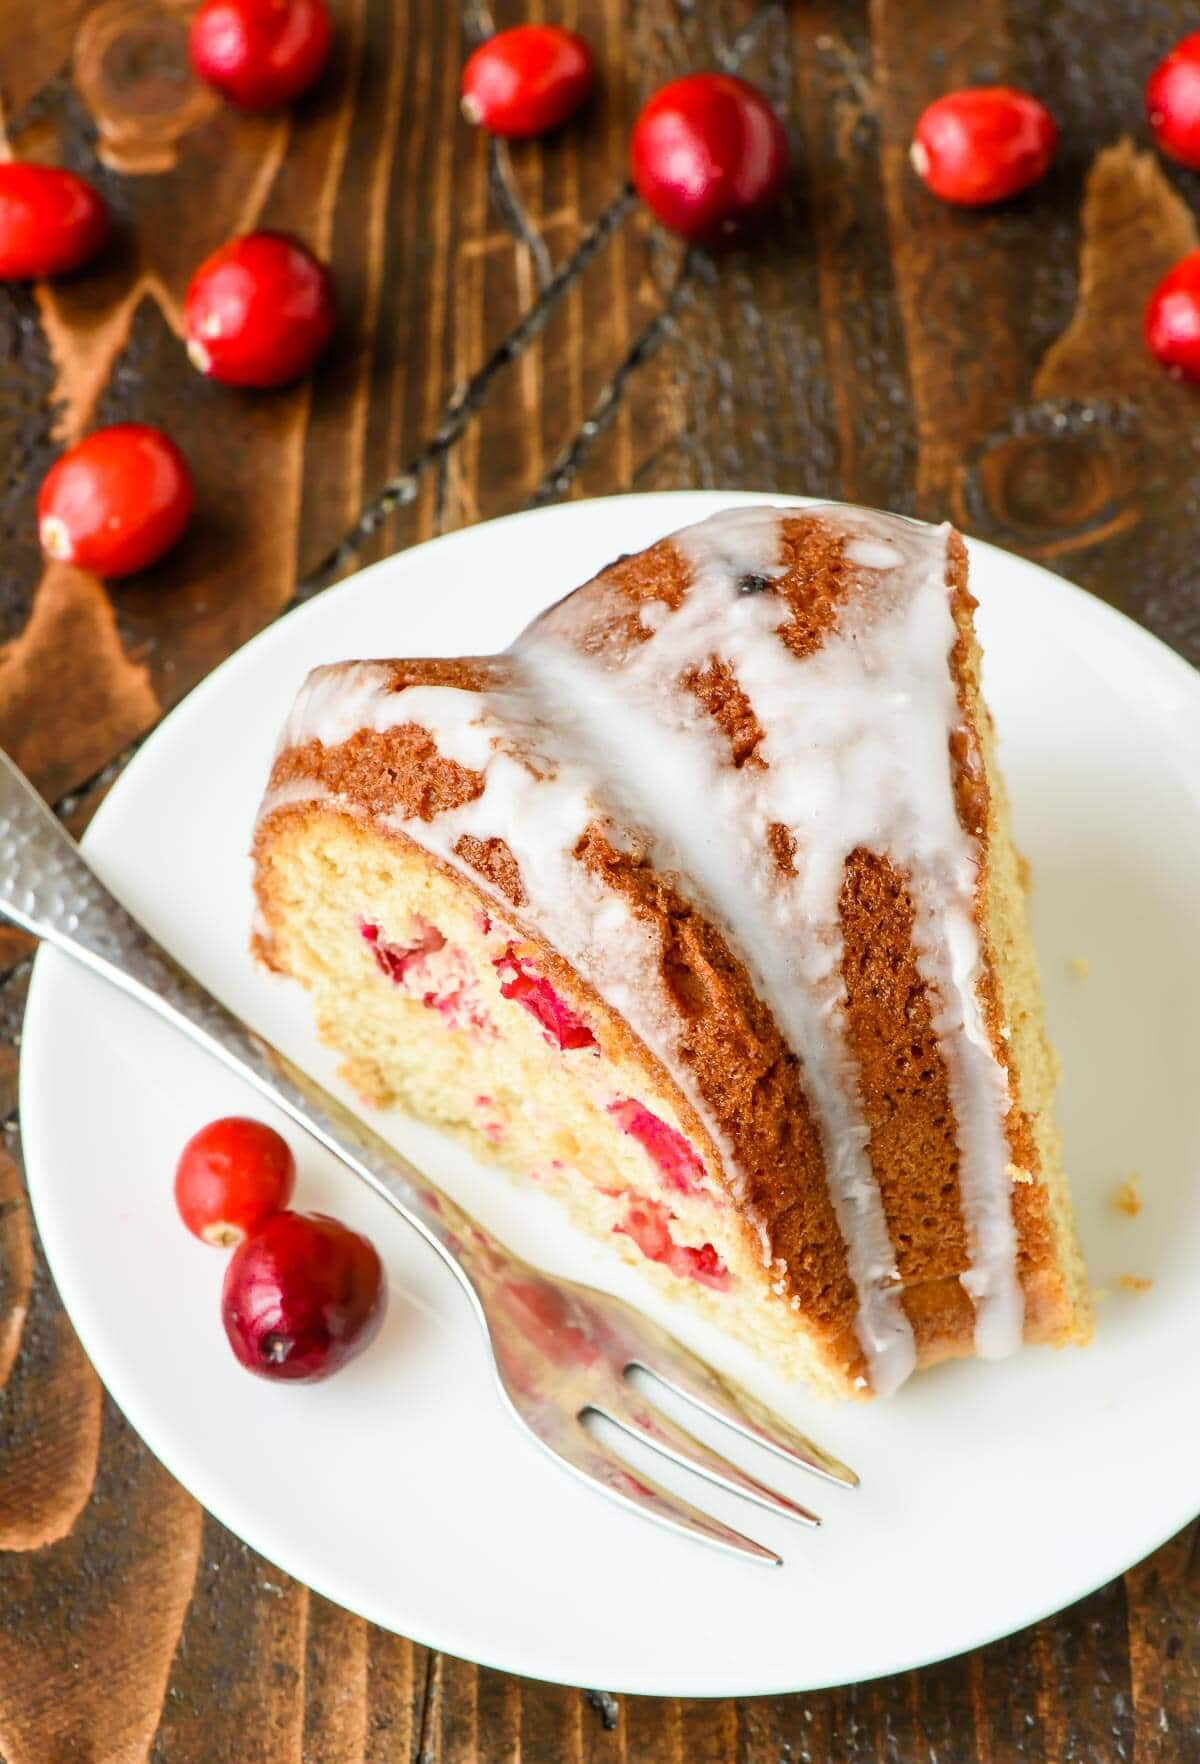 This Cranberry Sour Cream Coffee Cake is a total crowd pleaser, especially at the holidays! Make for Christmas breakfast or brunch.